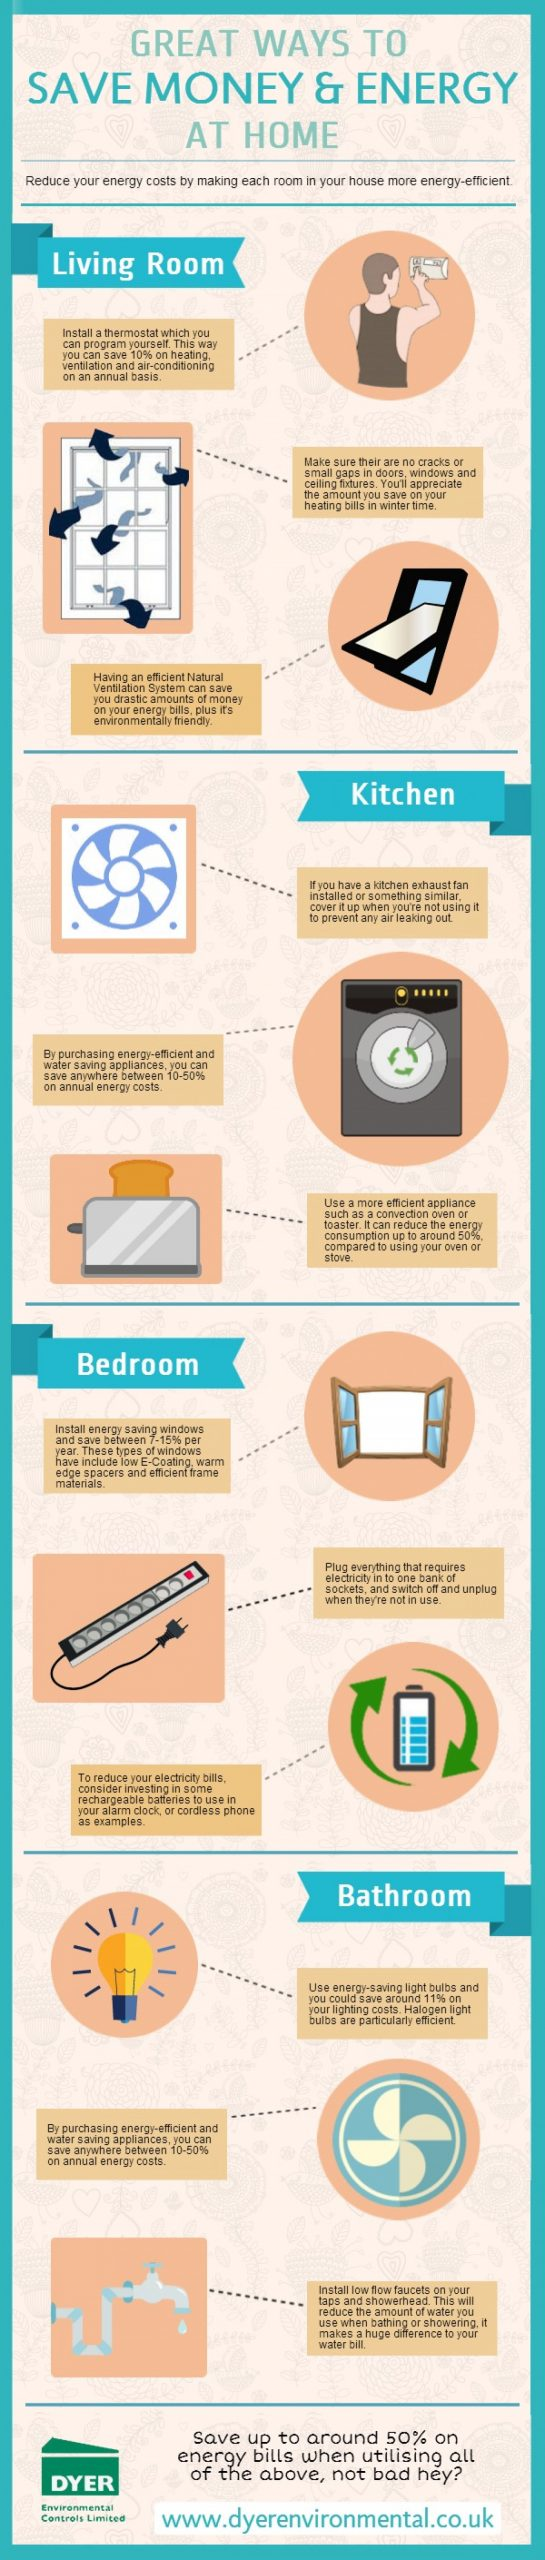 Tips on how to save on furniture and   equipment